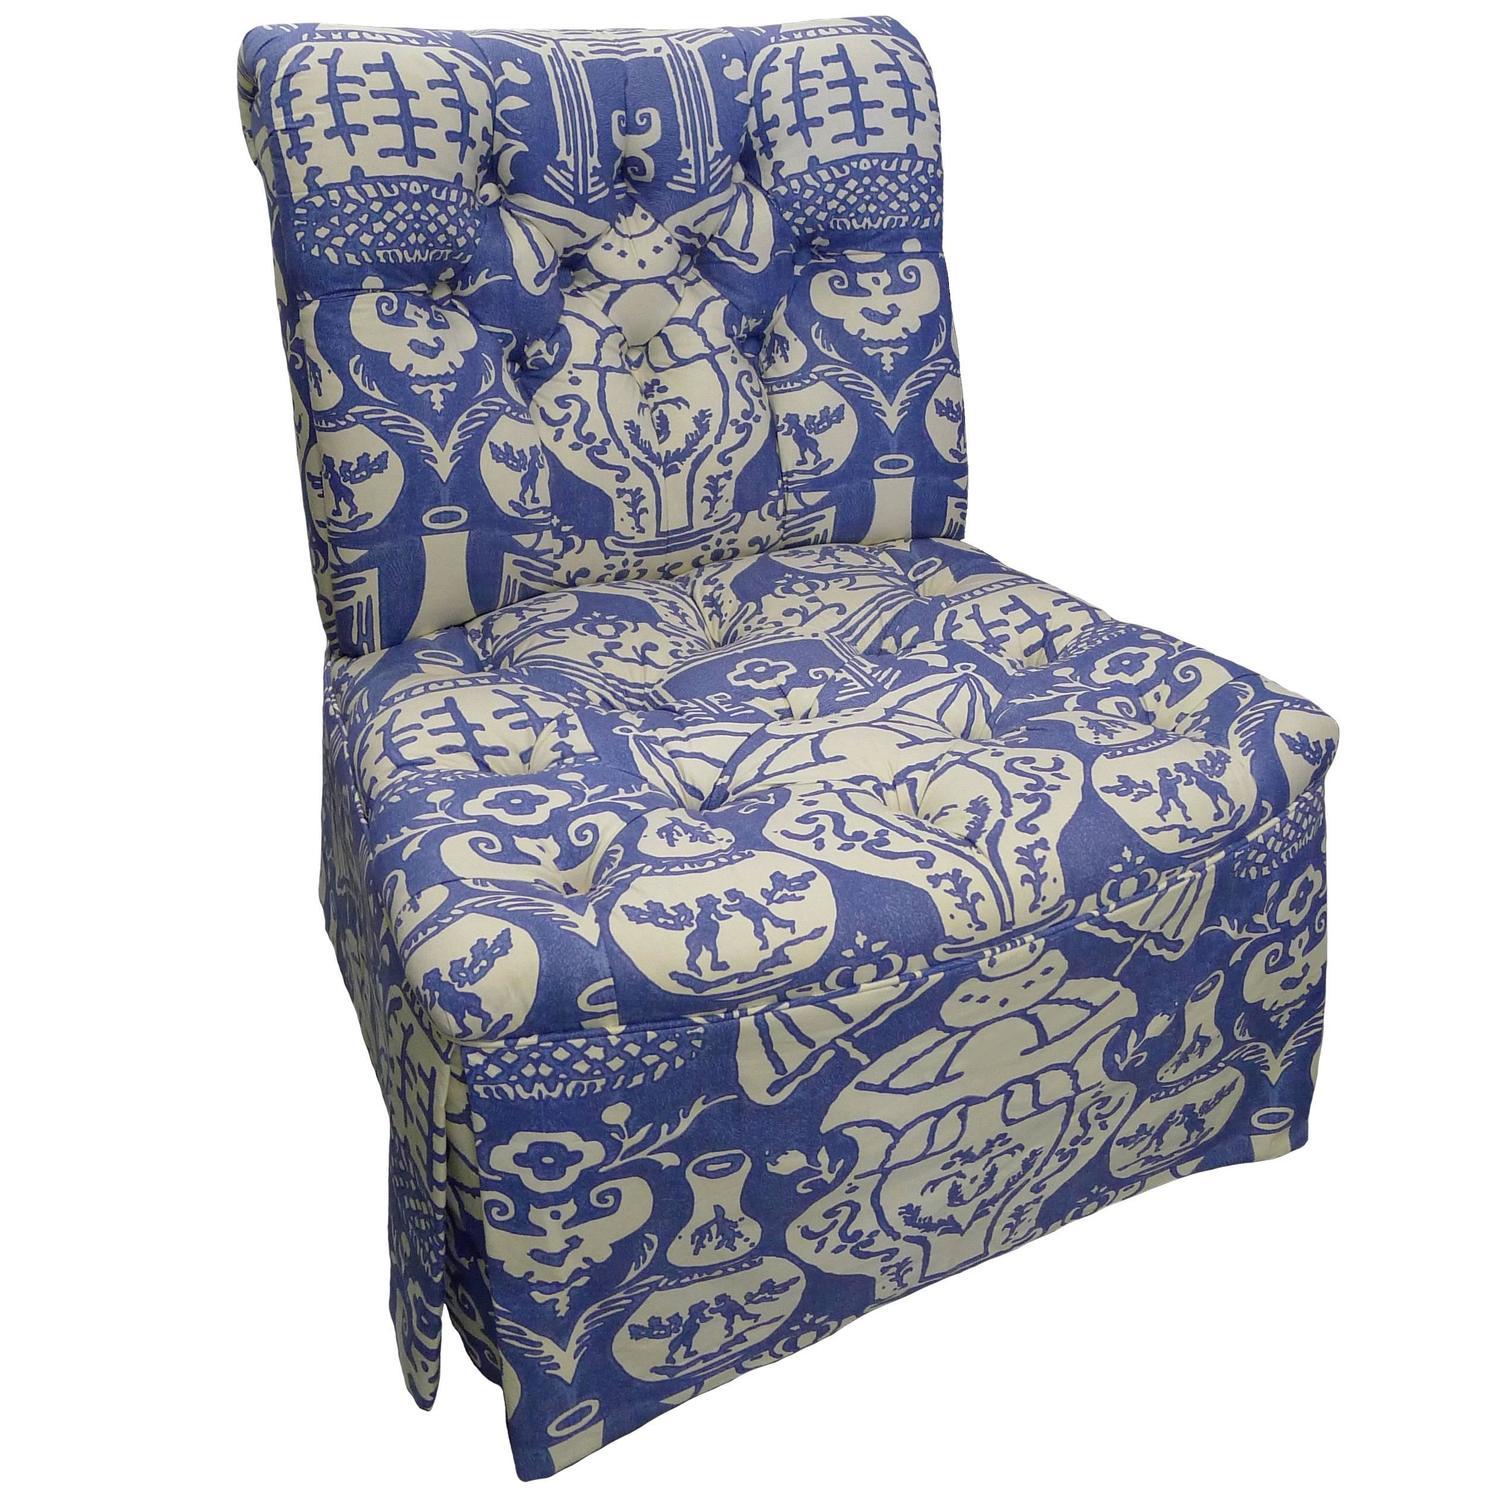 Blue Slipper Chair David Hicks The Vase Blue Upholstered Slipper Chair For